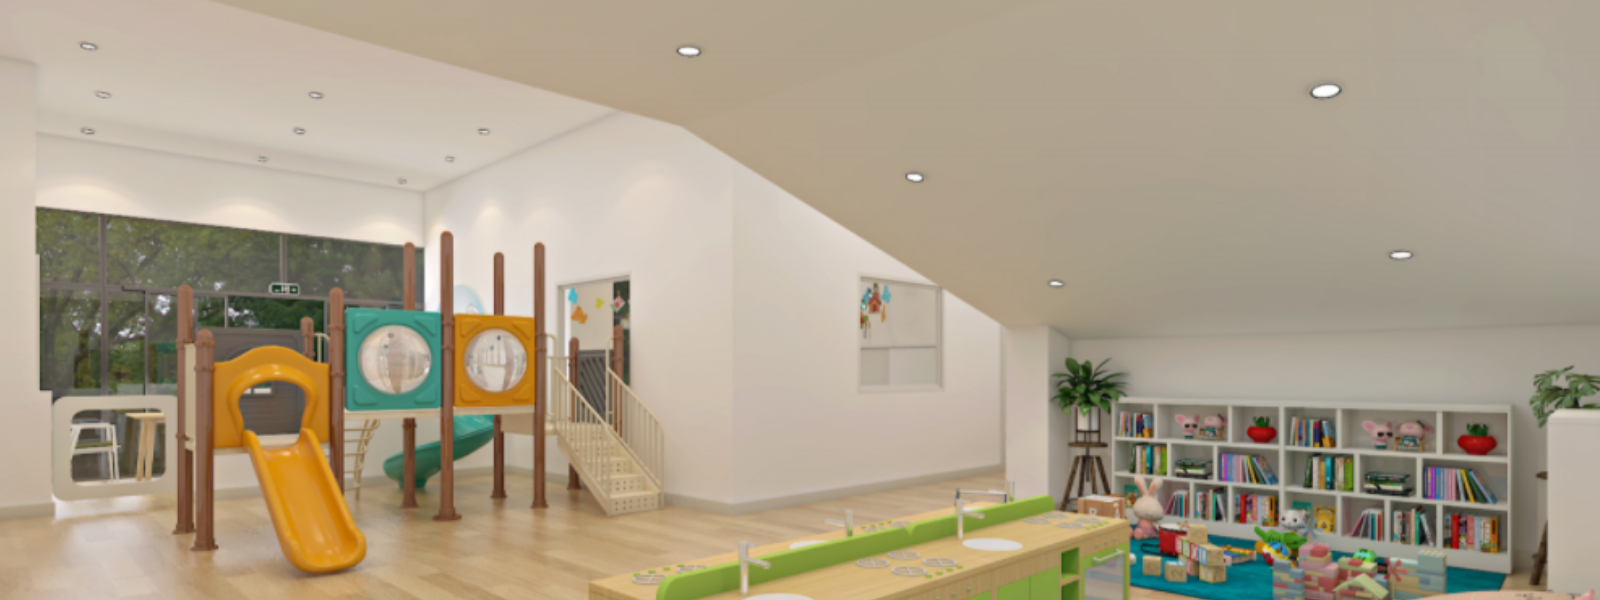 Tao Payoh banner image